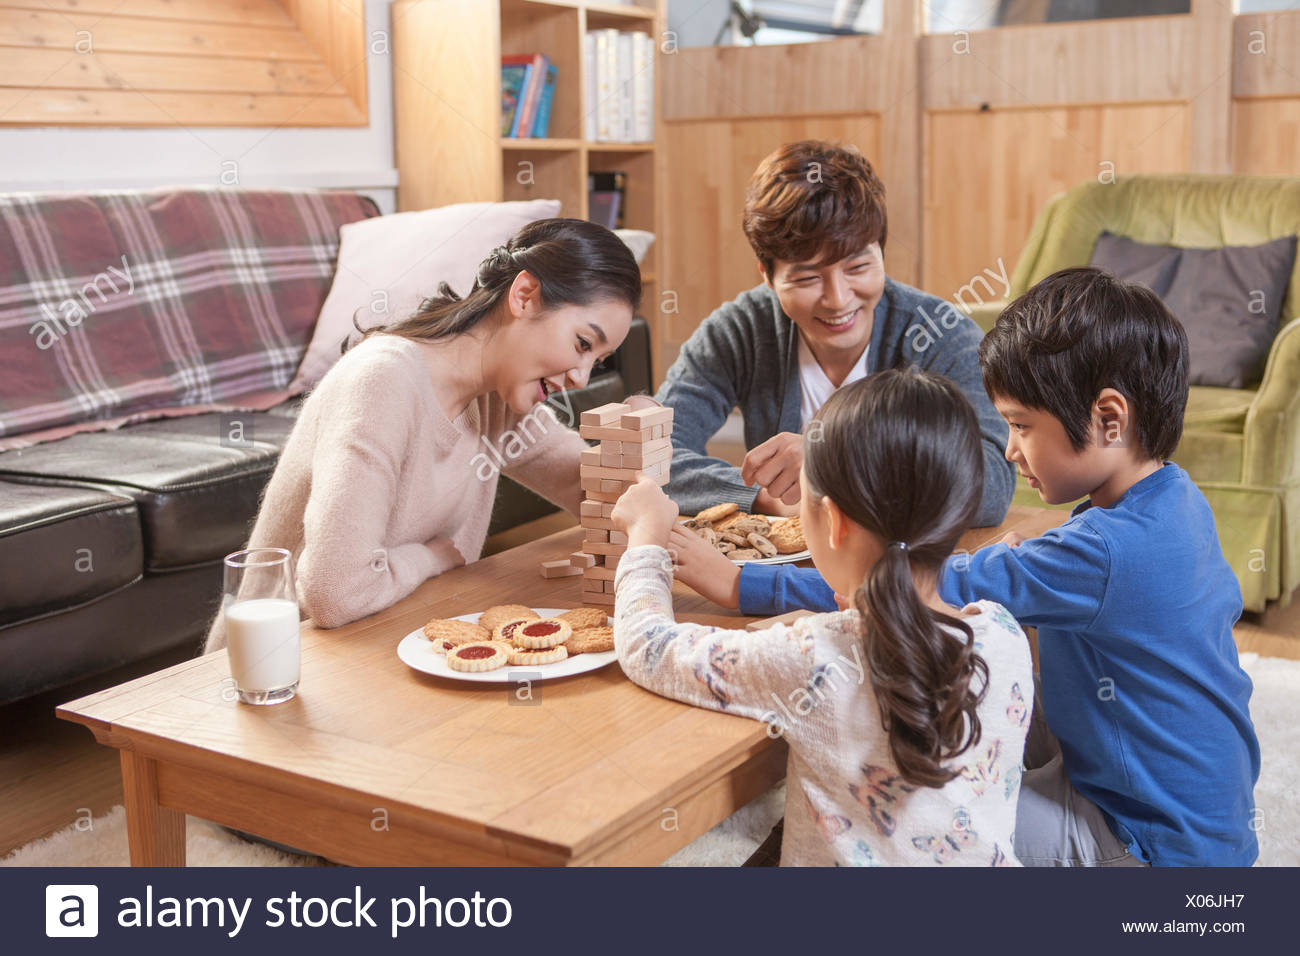 Harmonious family eating cookies together - Stock Image